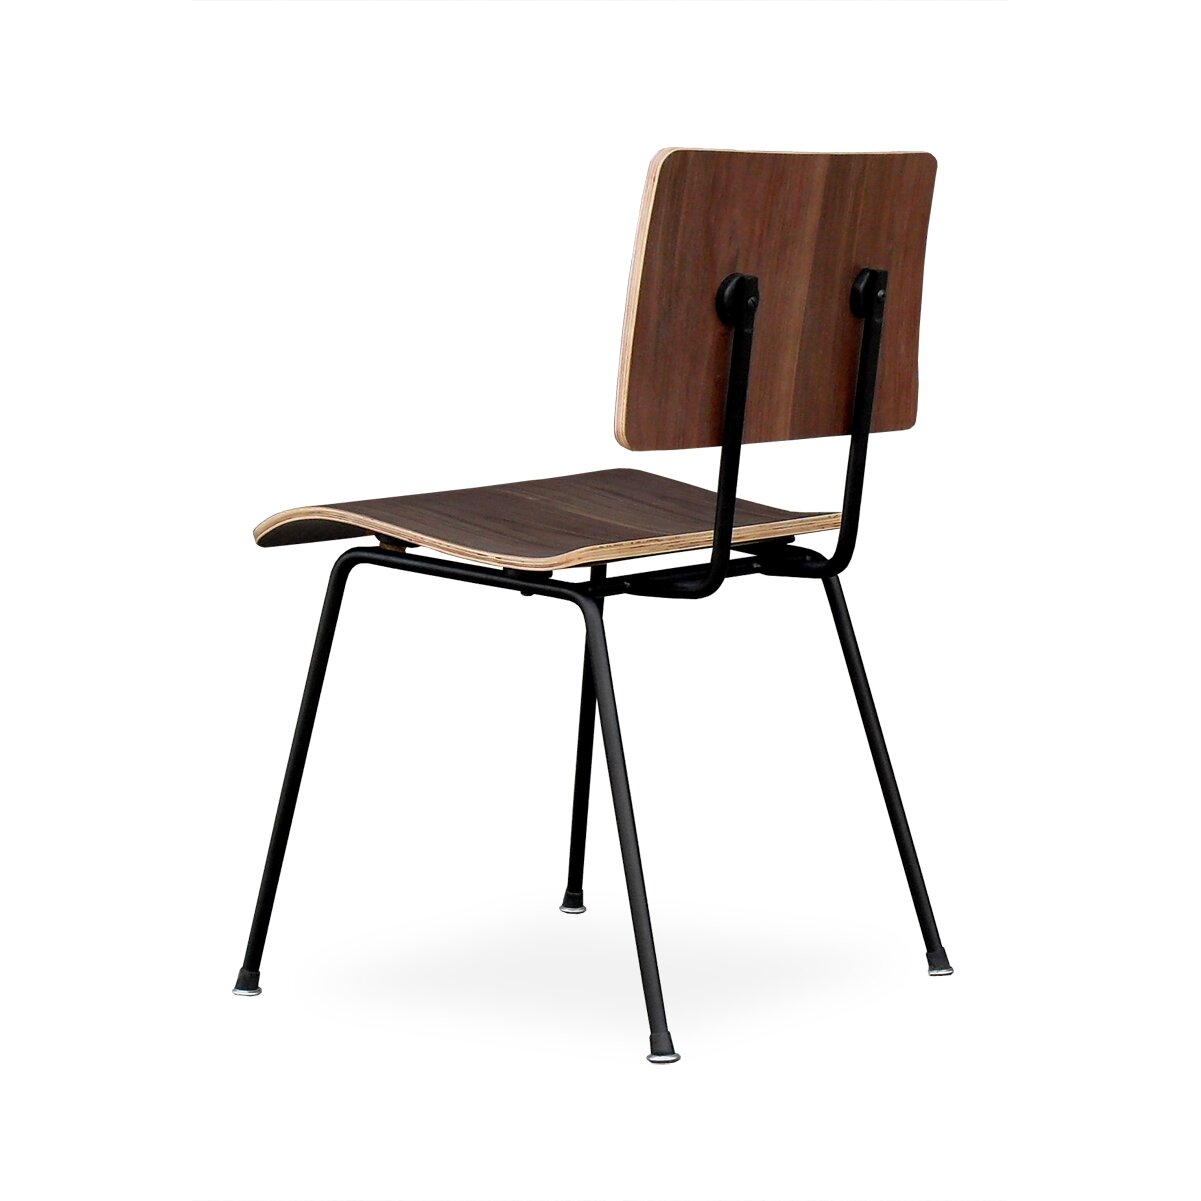 School chair reviews allmodern for School furniture 4 less reviews